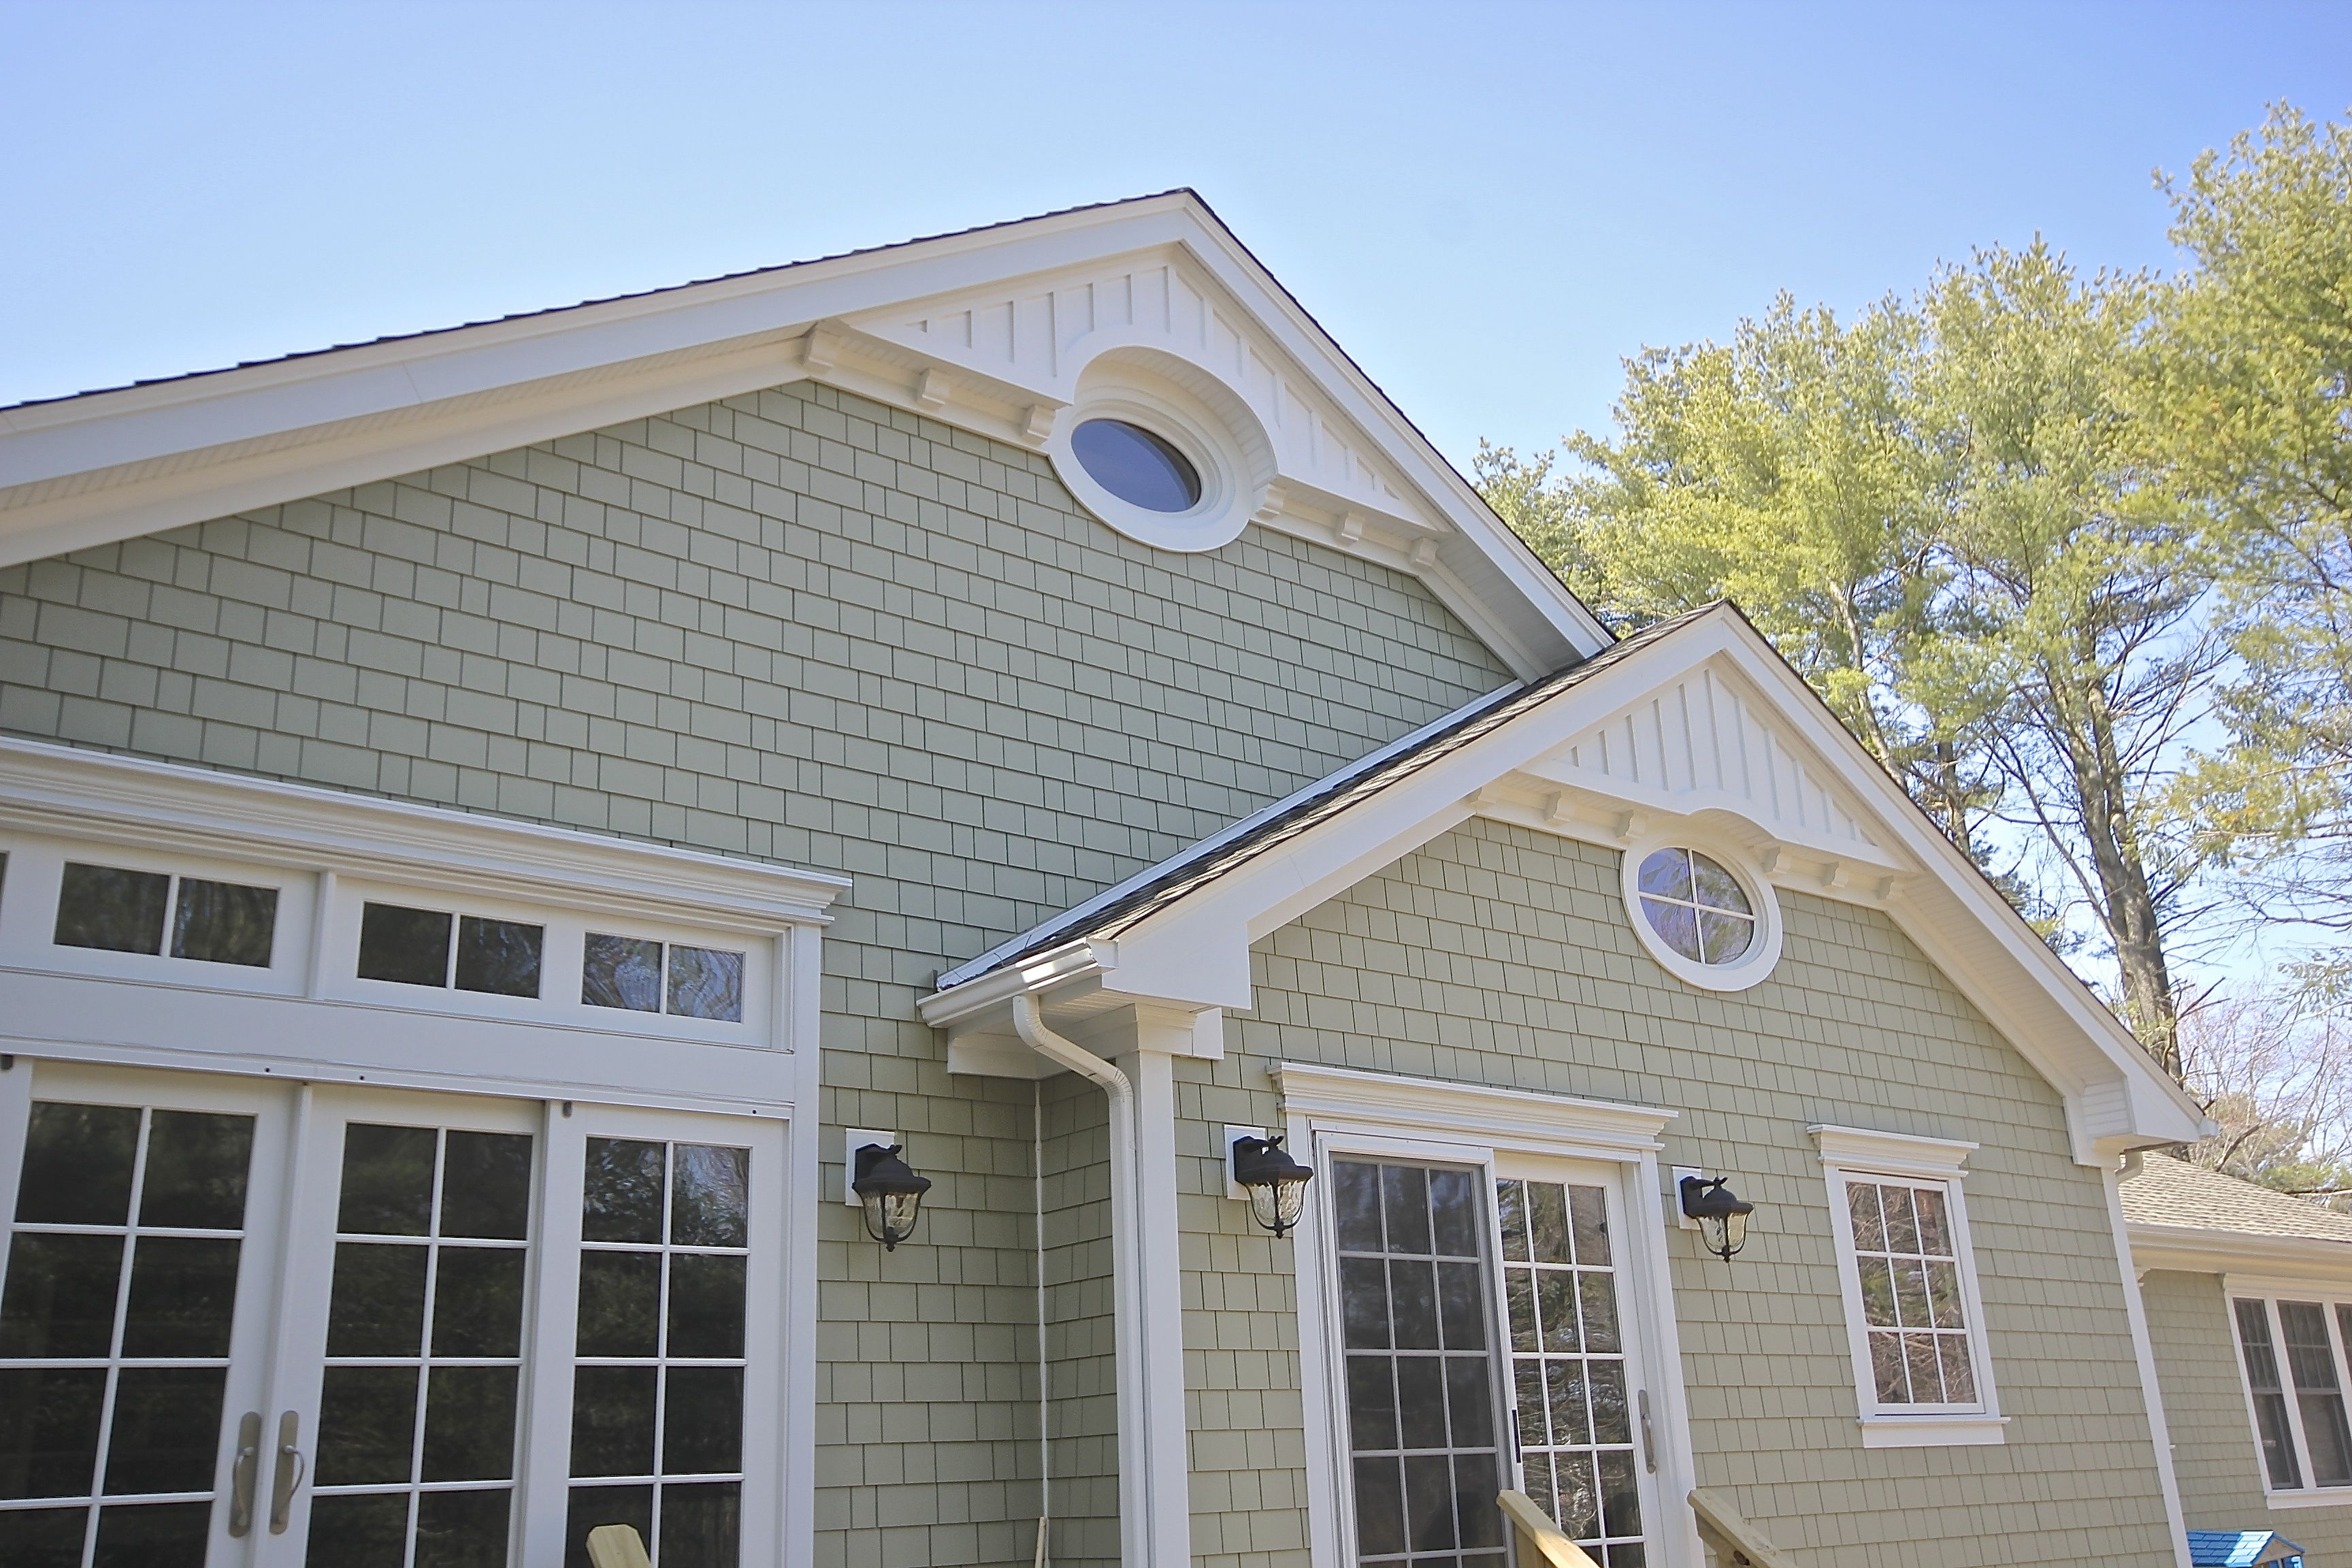 We Recently Completed This James Hardie Siding Project In Laurel Hollow Ny The Heathered Moss Color Of Hardi Hardie Siding Outdoor Siding James Hardie Siding